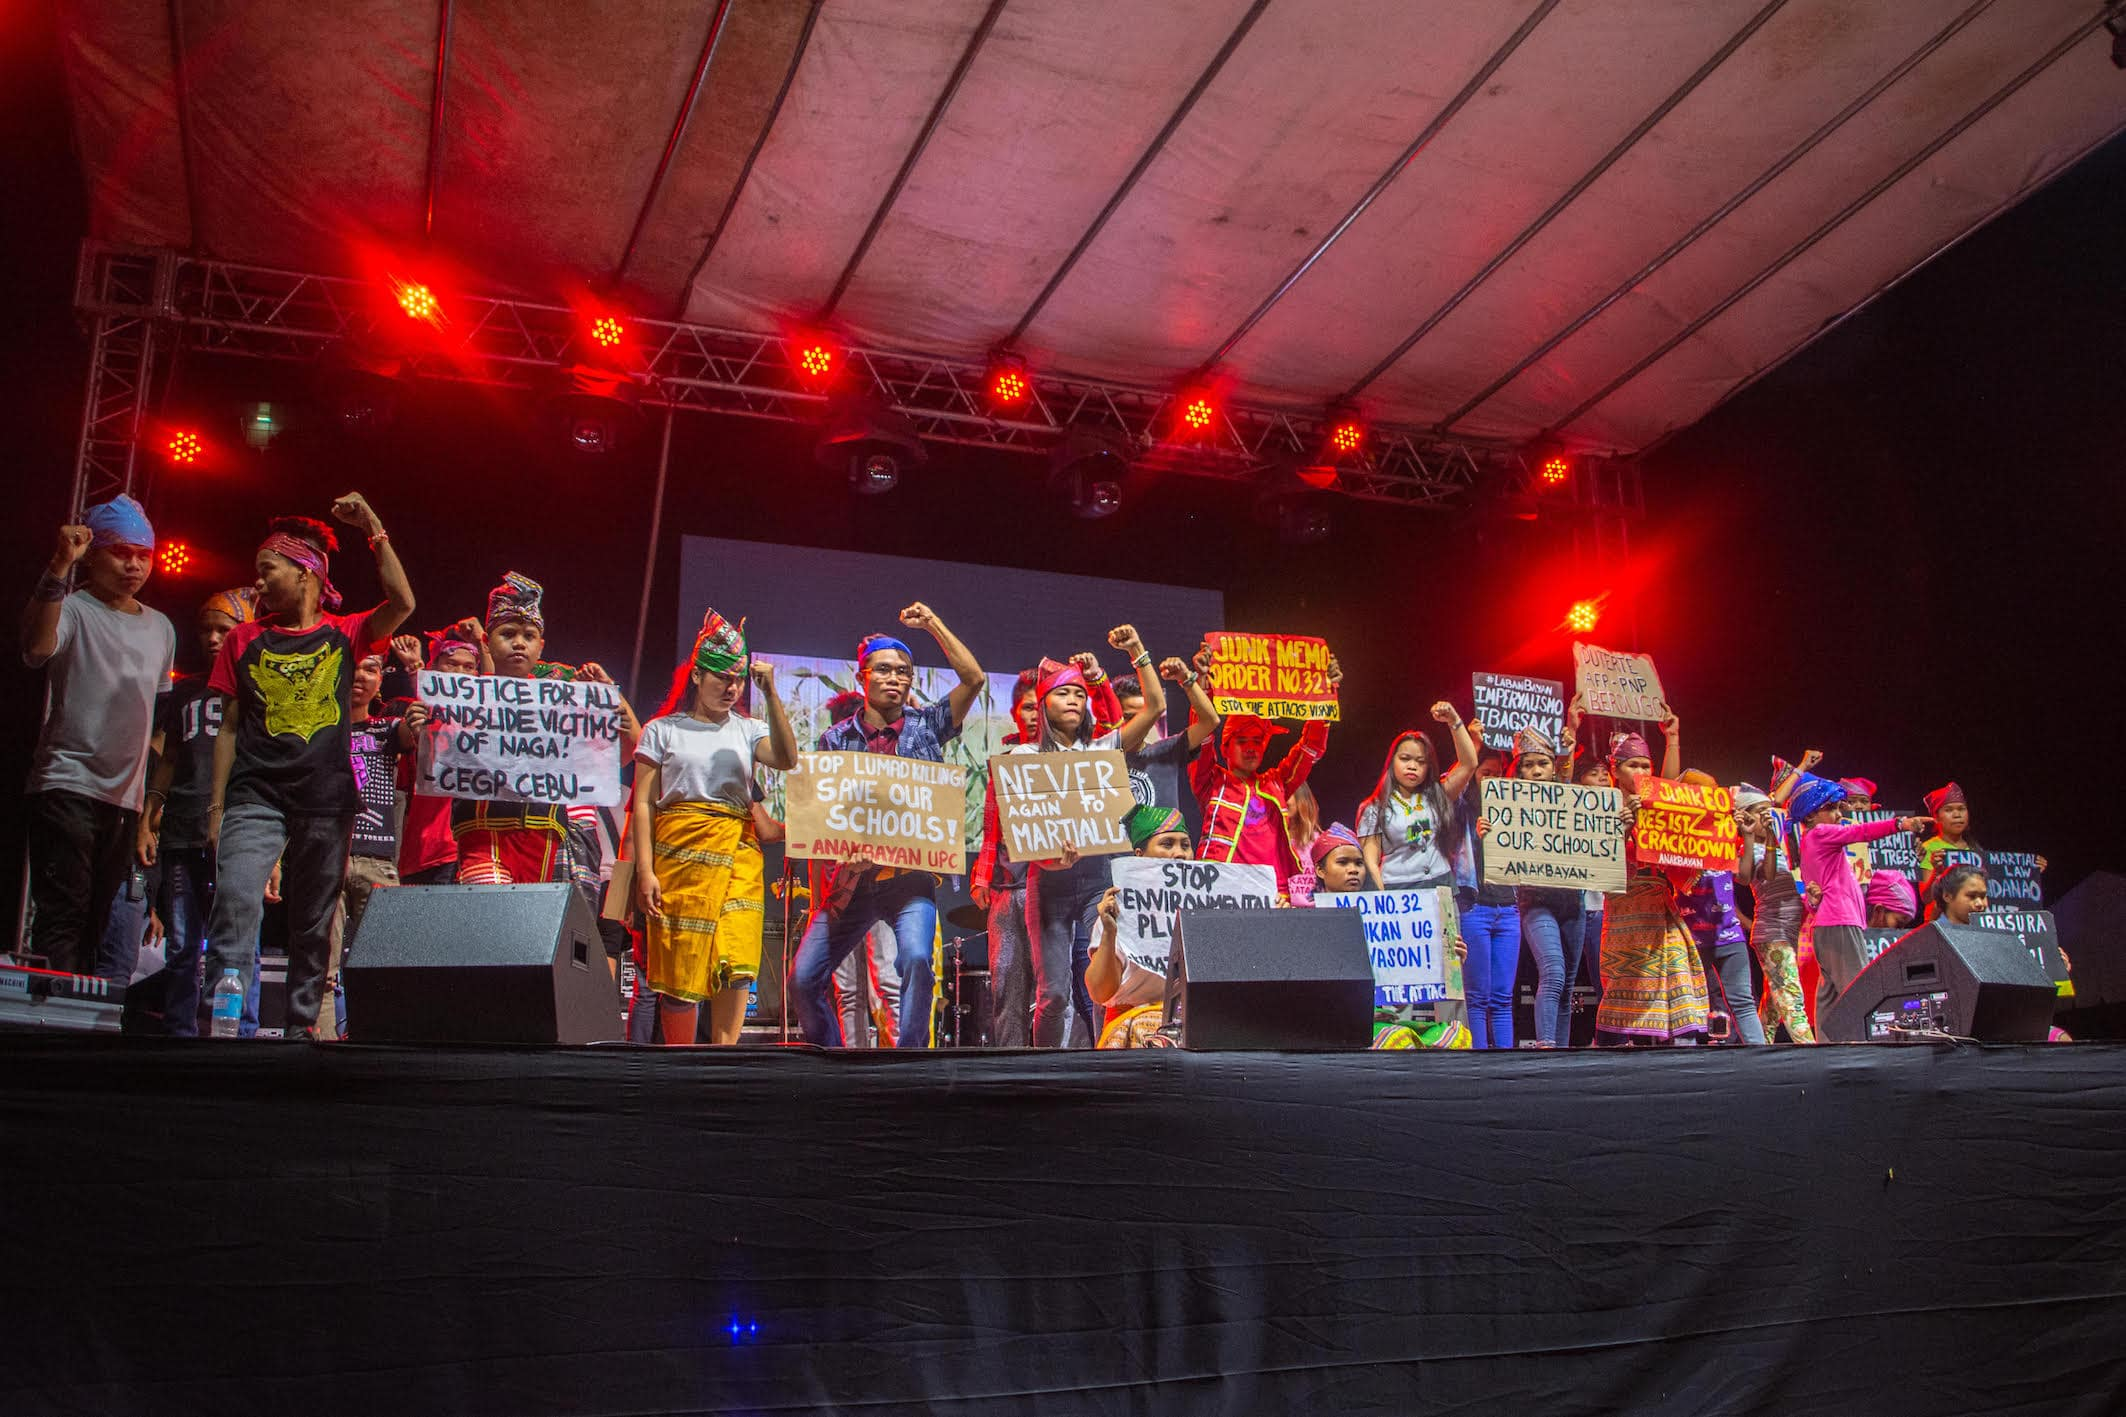 The Lumad calls to stop the attacks during their theatrical performance. Photo courtesy of UP Cebu Cookout 2019